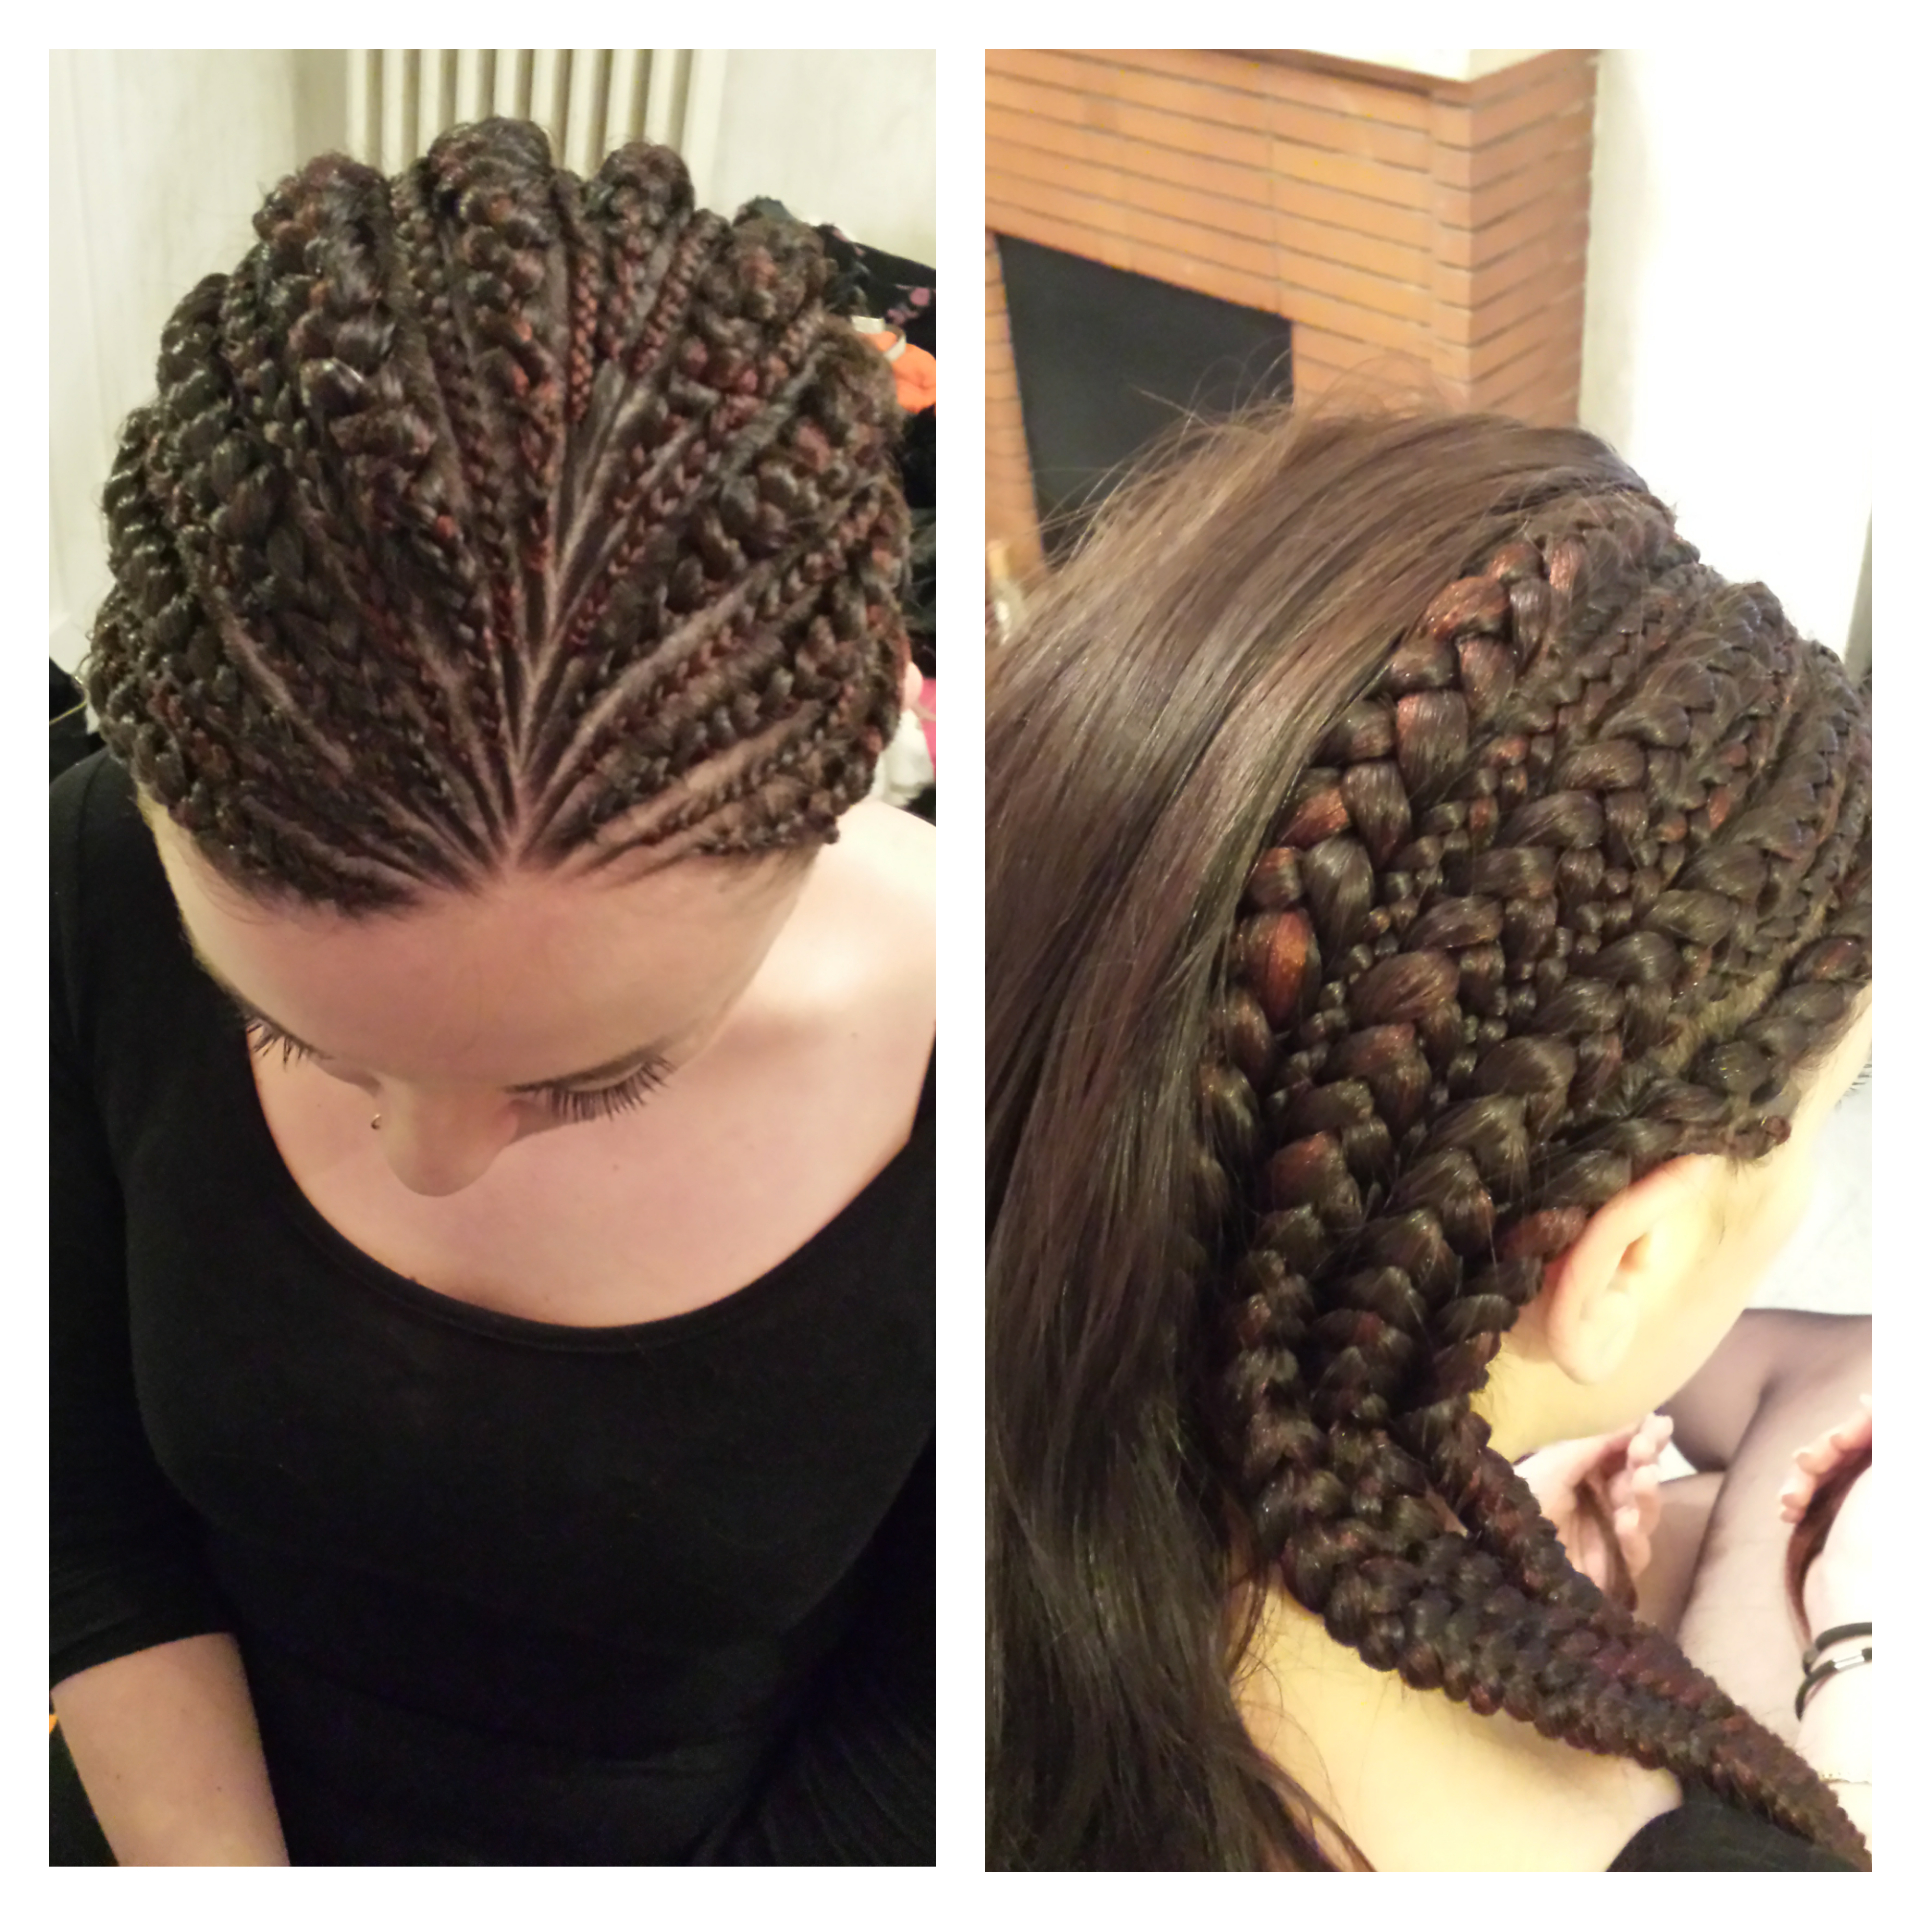 salon de coiffure afro tresse tresses box braids crochet braids vanilles tissages paris 75 77 78 91 92 93 94 95 TLBZFPVK